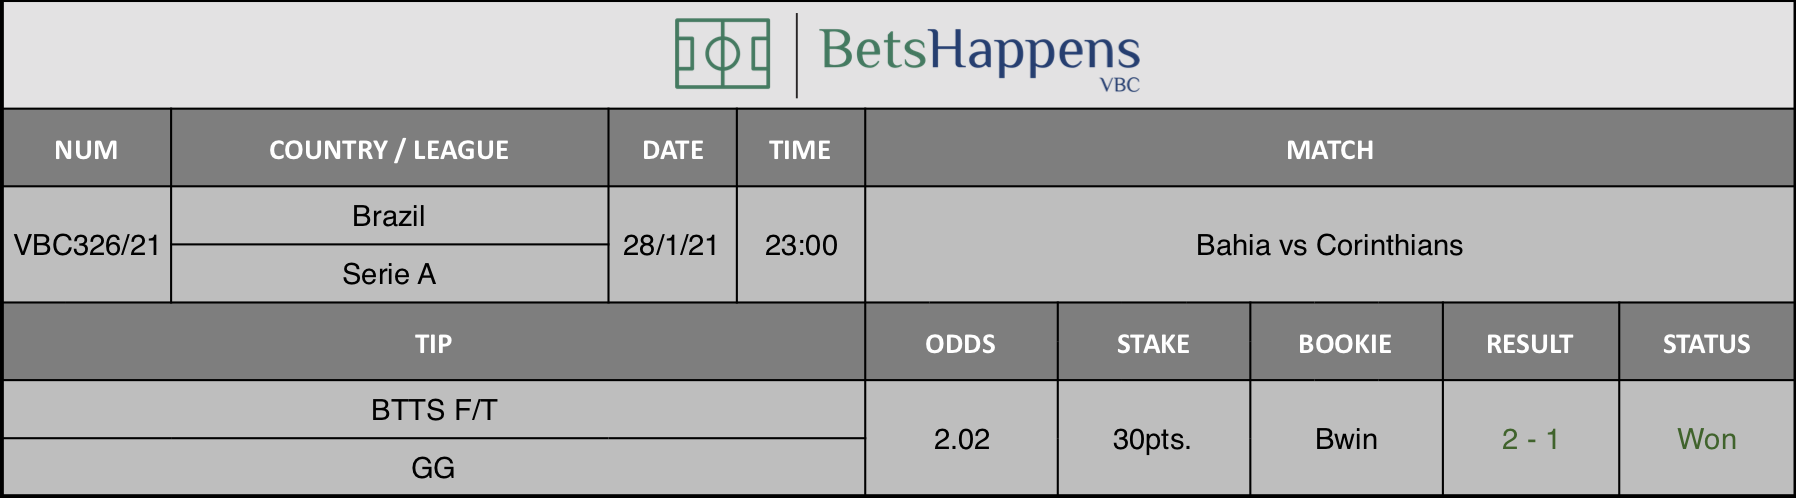 Results of our tip for the Bahia vs Corinthians match where BTTS F/T  GG is recommended.